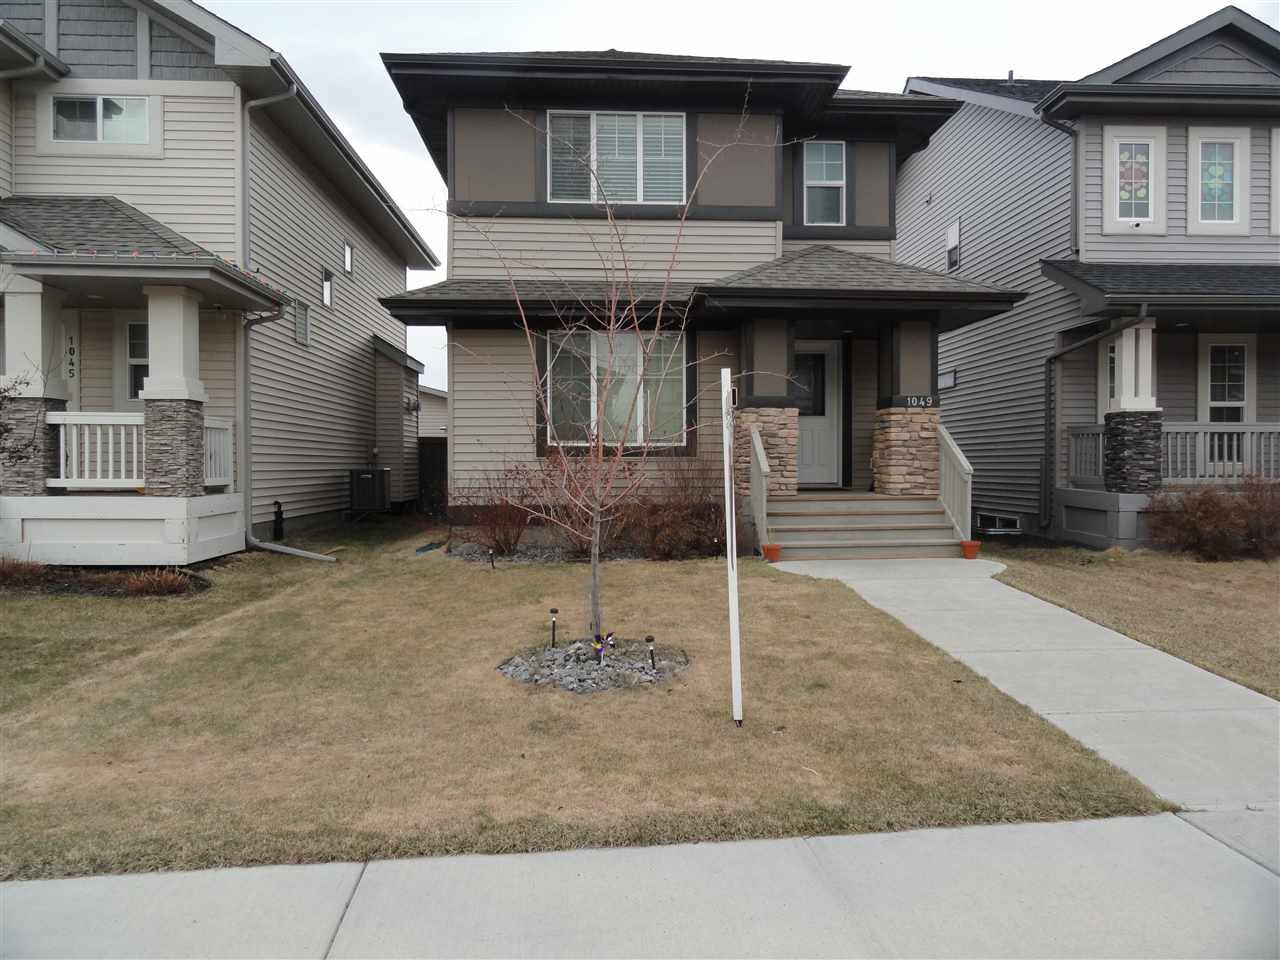 Main Photo: 1049 177A Street in Edmonton: Zone 56 House for sale : MLS®# E4198238